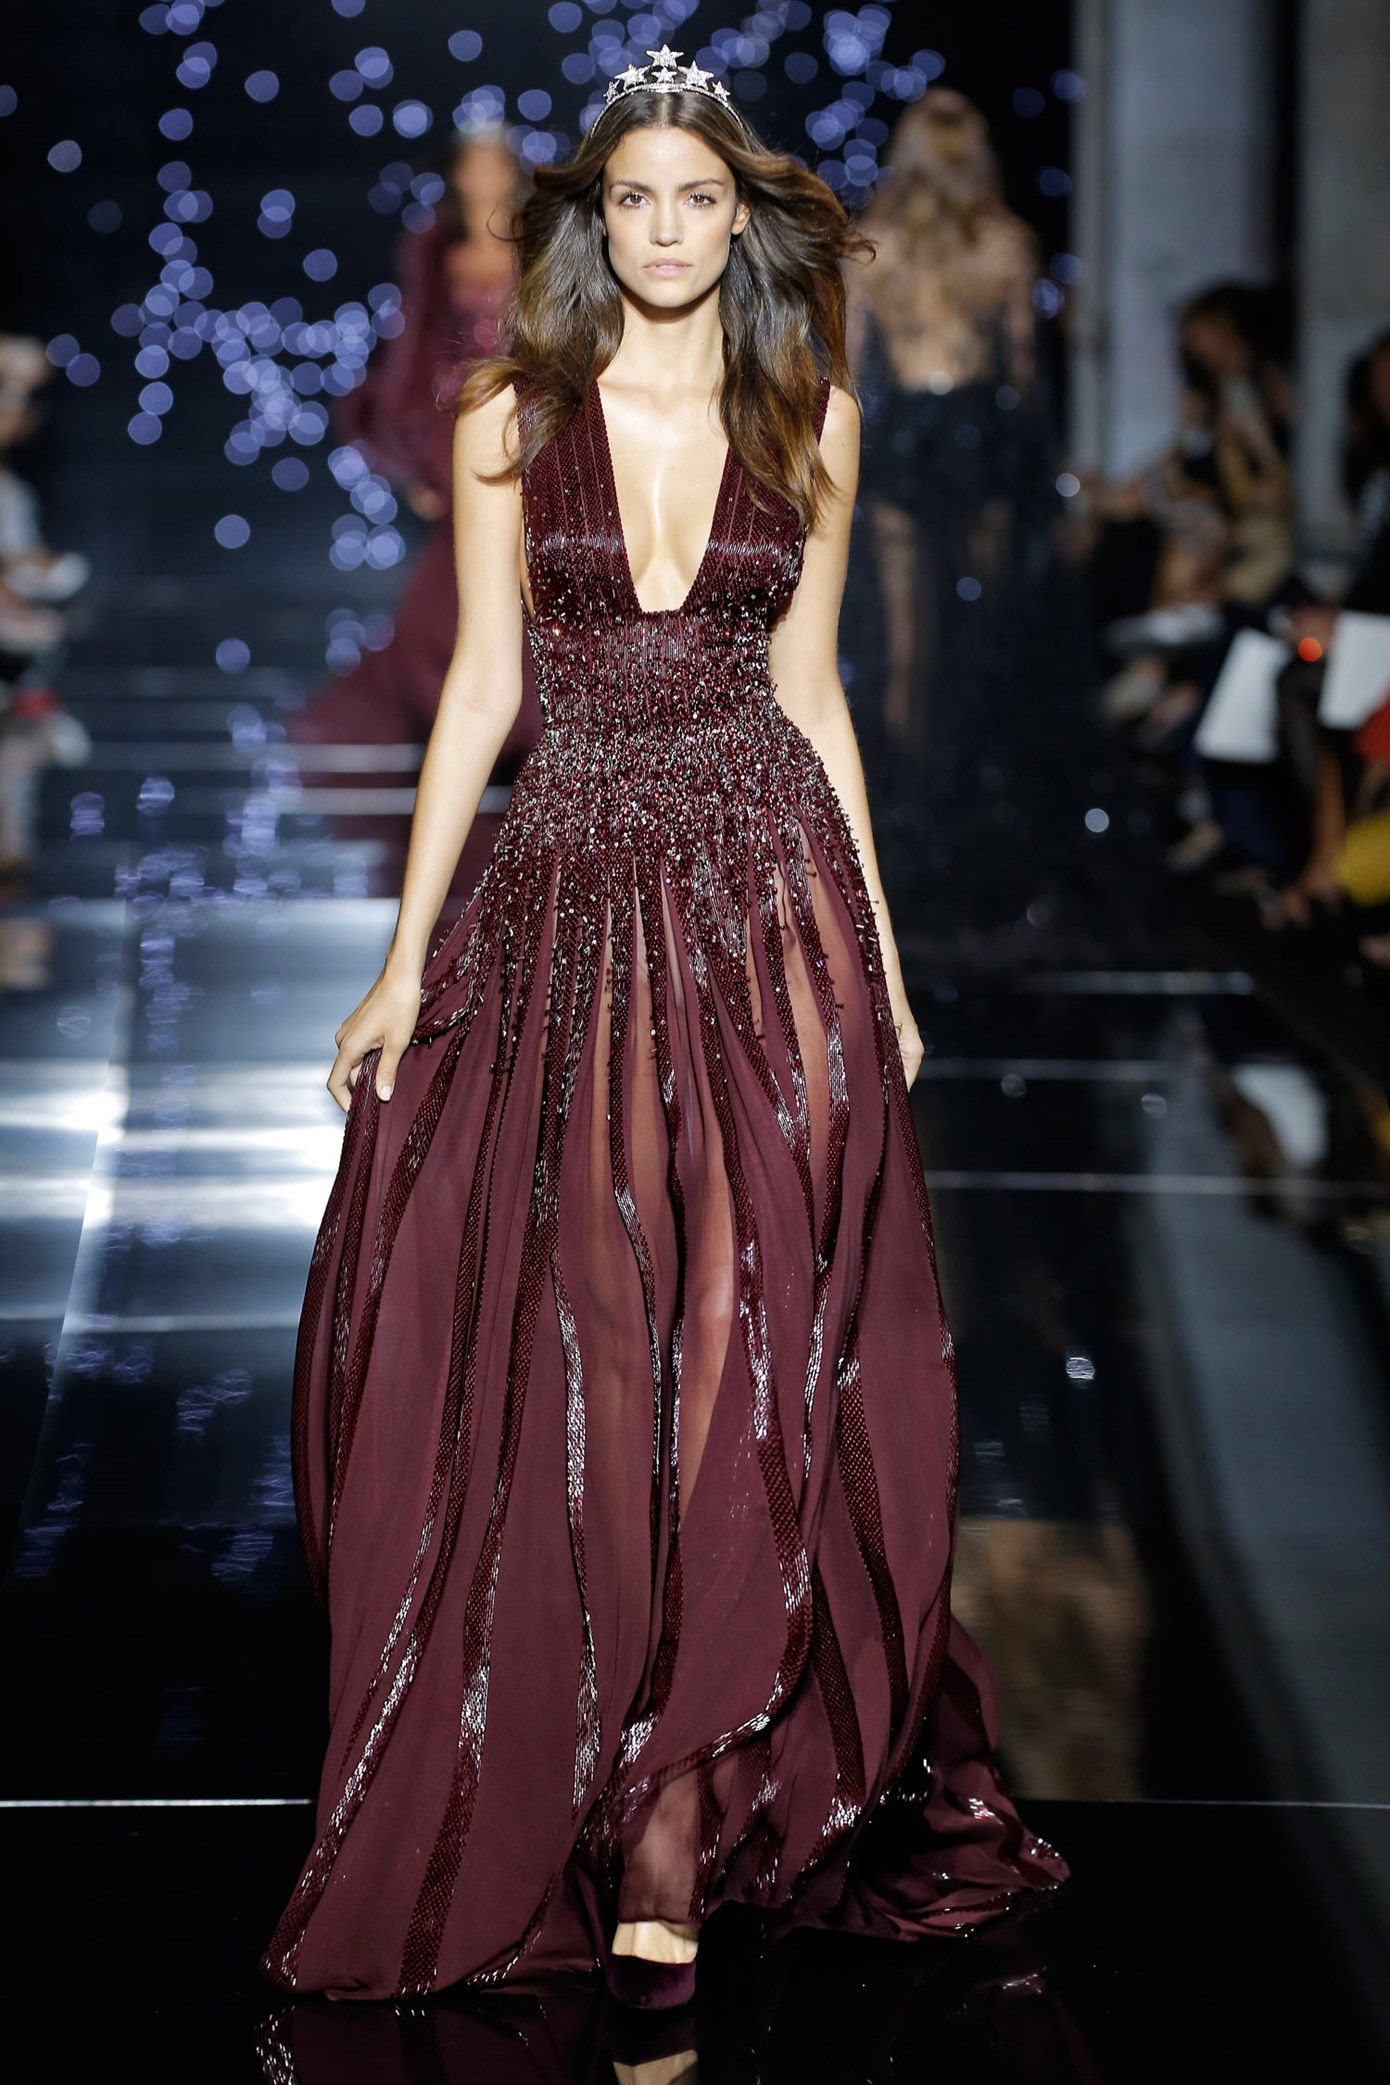 Zuhair muradcouture fall winter 2015 16 long fluid dress for High fashion couture dresses